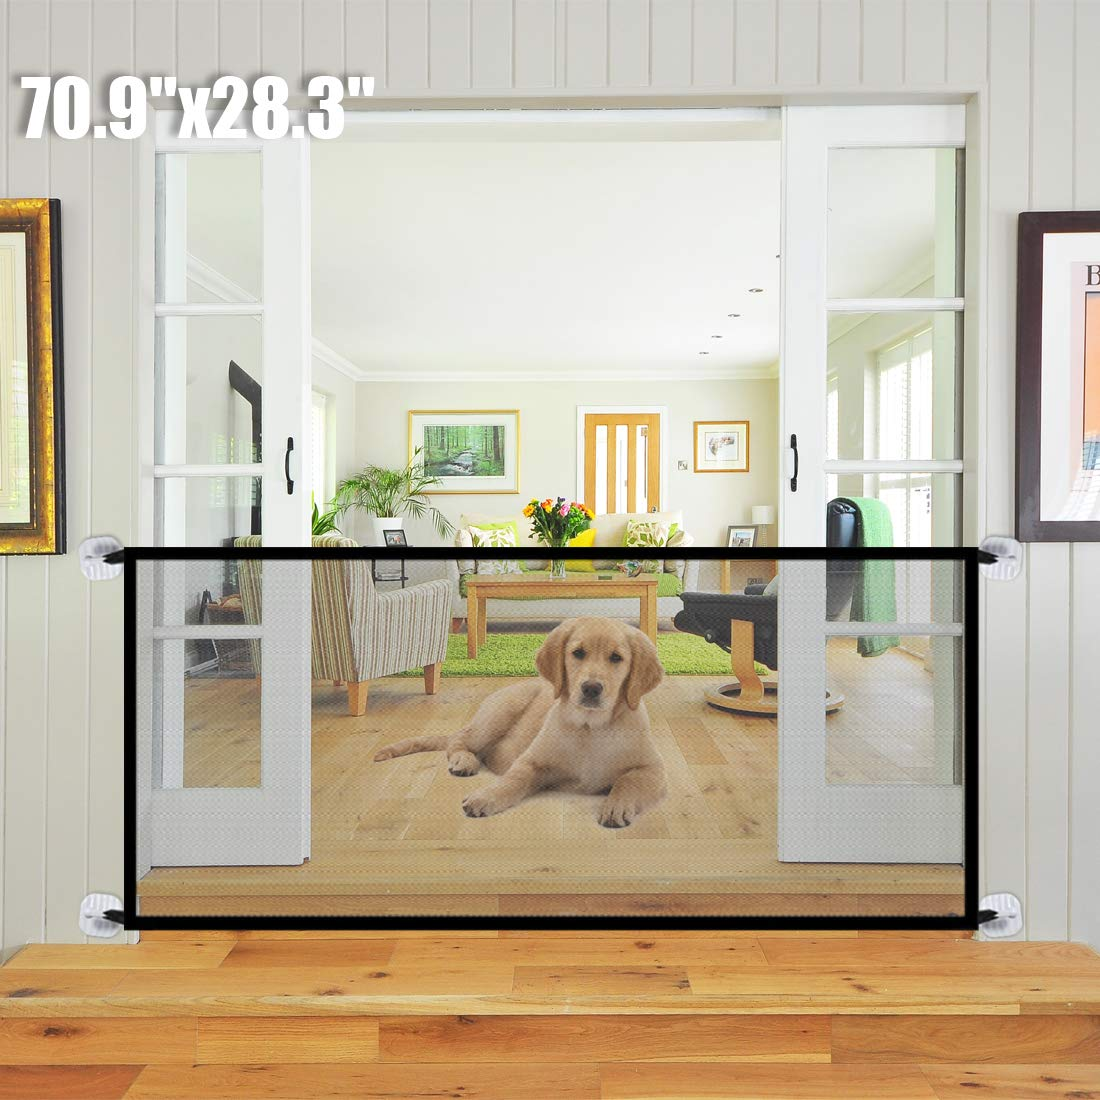 70.9''x28.3''Magic Gate for Dogs, Pet Gate,Magic Gate Portable Folding mesh gate Safe Guard Isolated Gauze Indoor and Outdoor Safety Gate Install Anywhere for Dogs